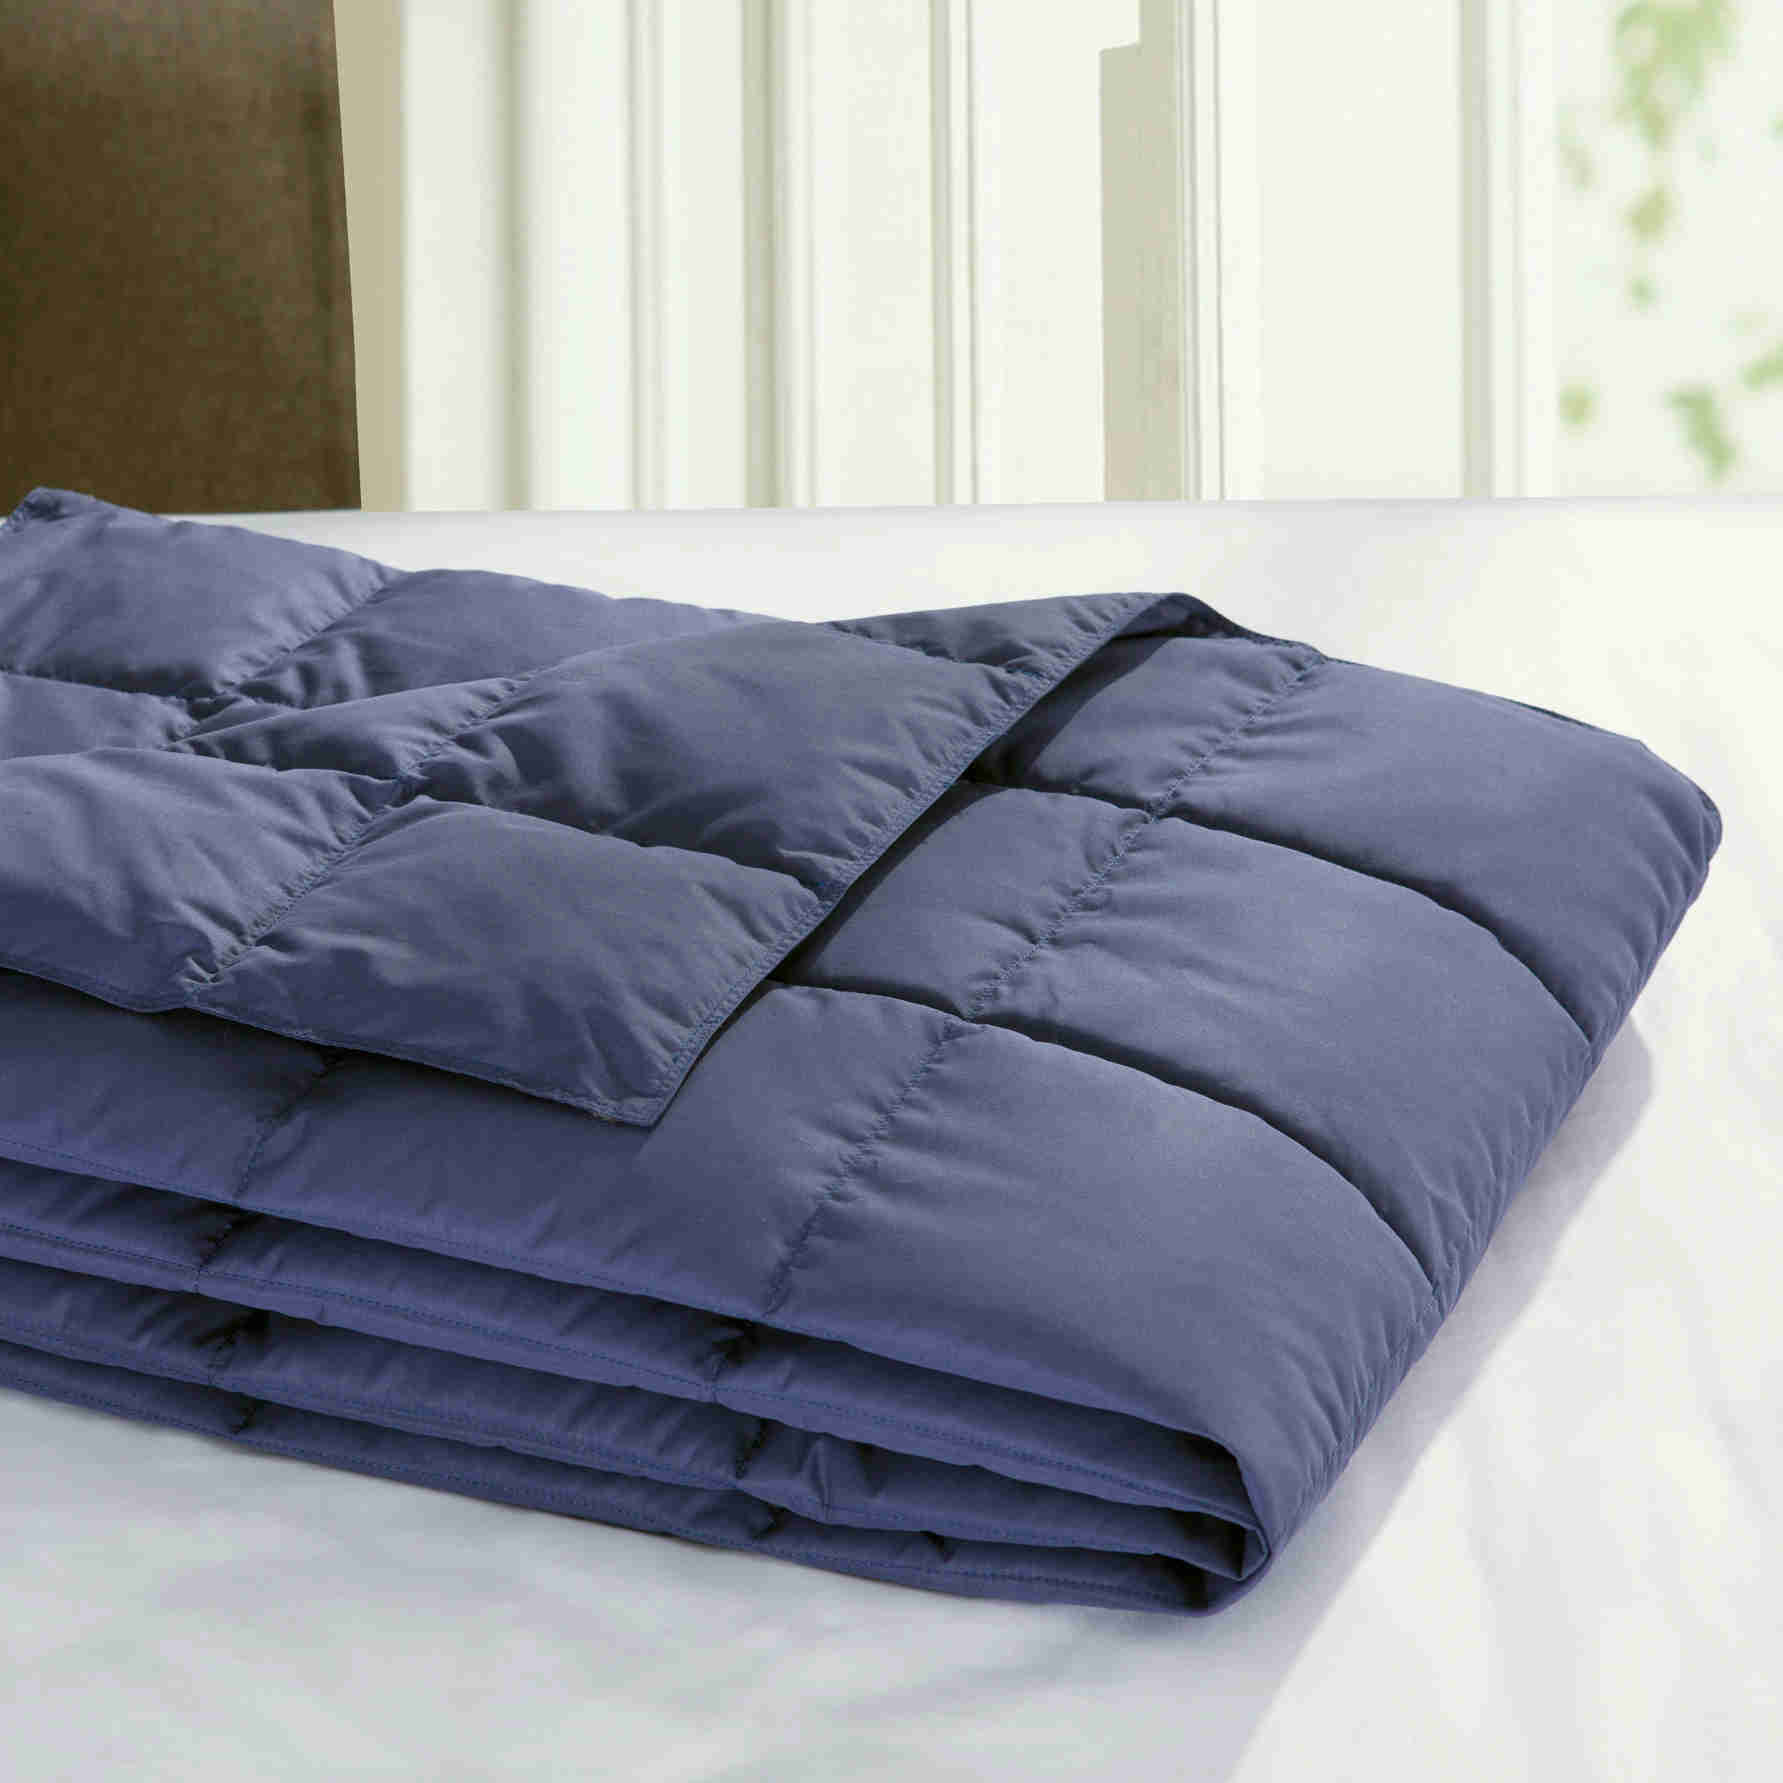 Puredown All Season Lightweight Packable Down Blanket Down throw, Down-proof Peach Skin Fabric, Navy